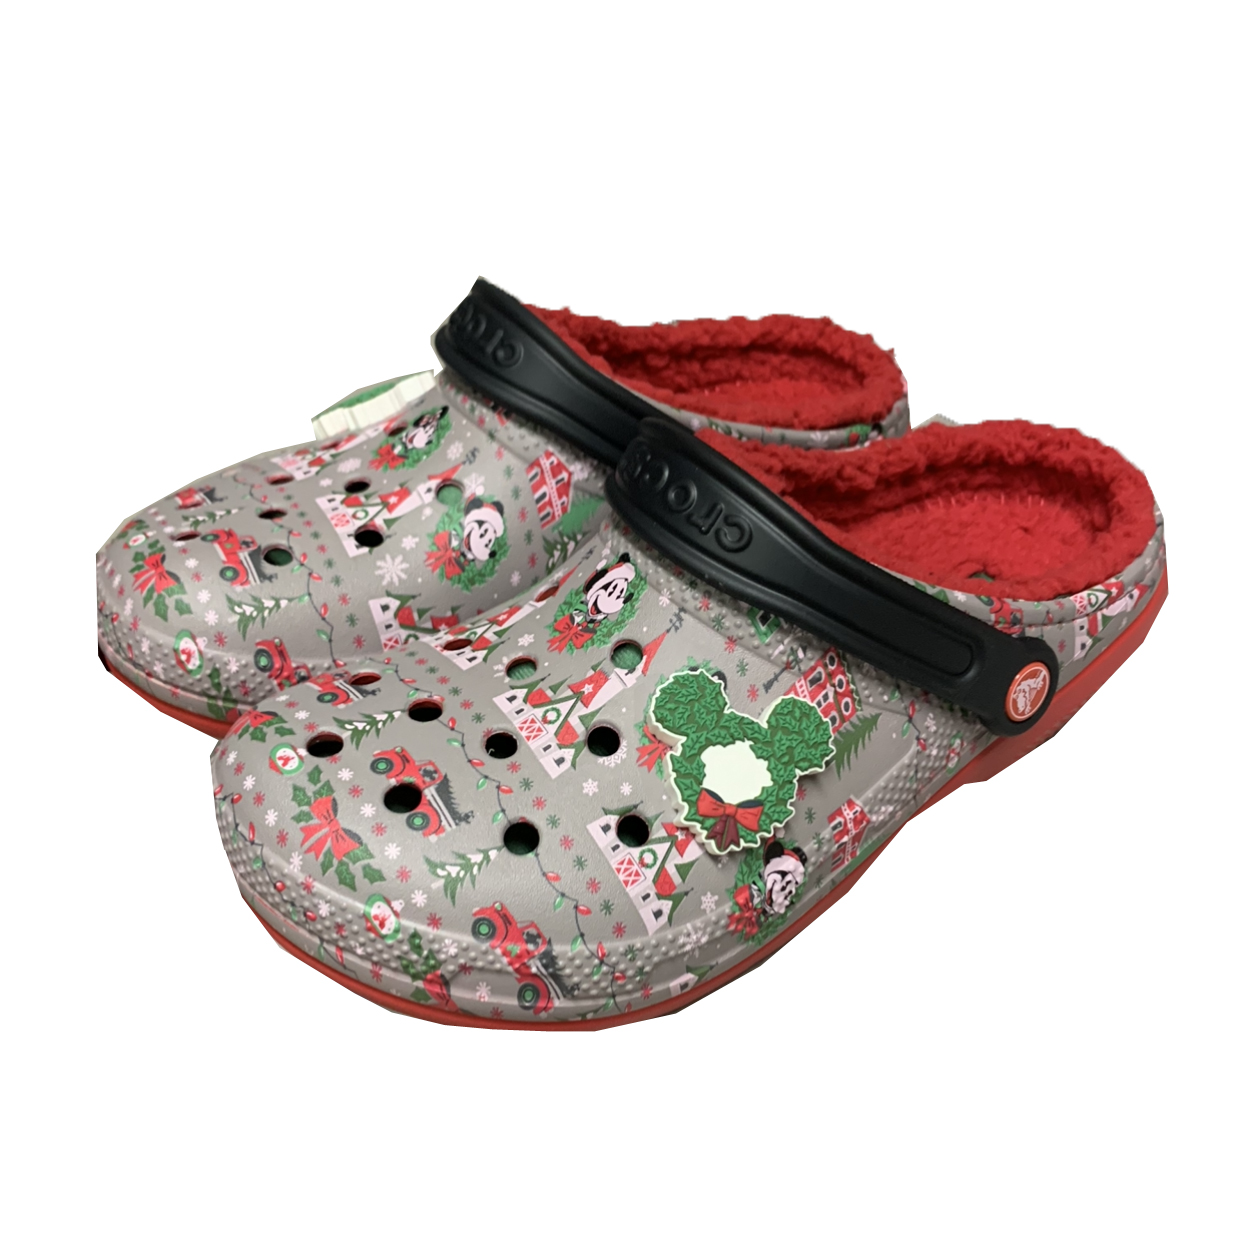 Disney Crocs for Adults - Holiday